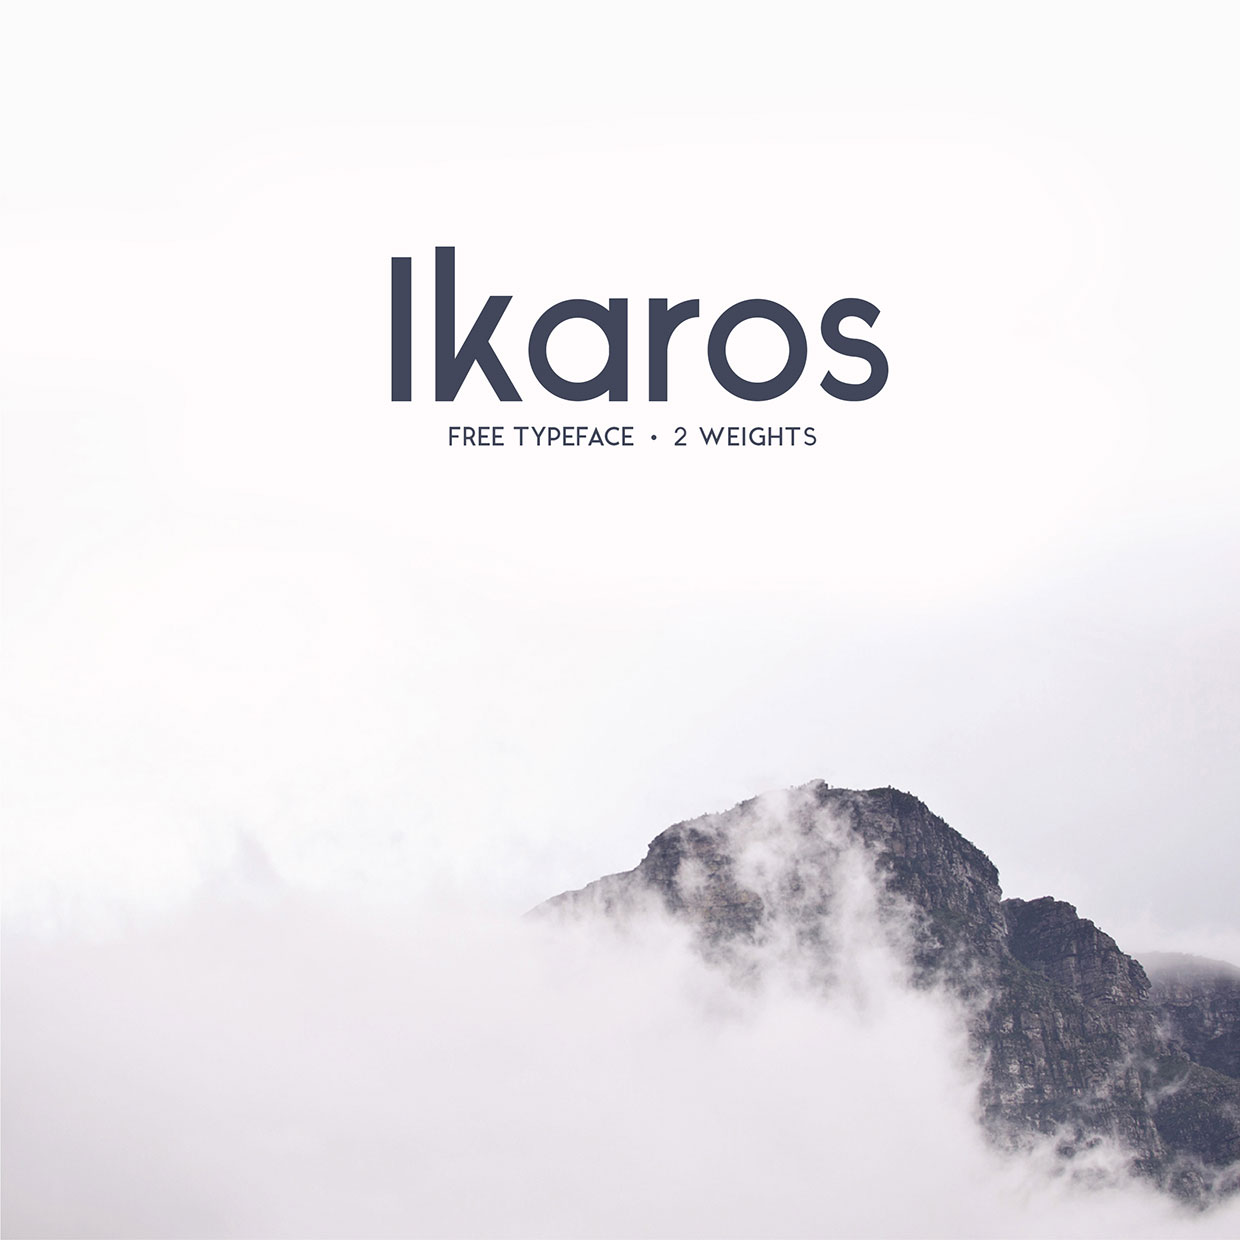 Ikaros Best Free Logo Fonts 077